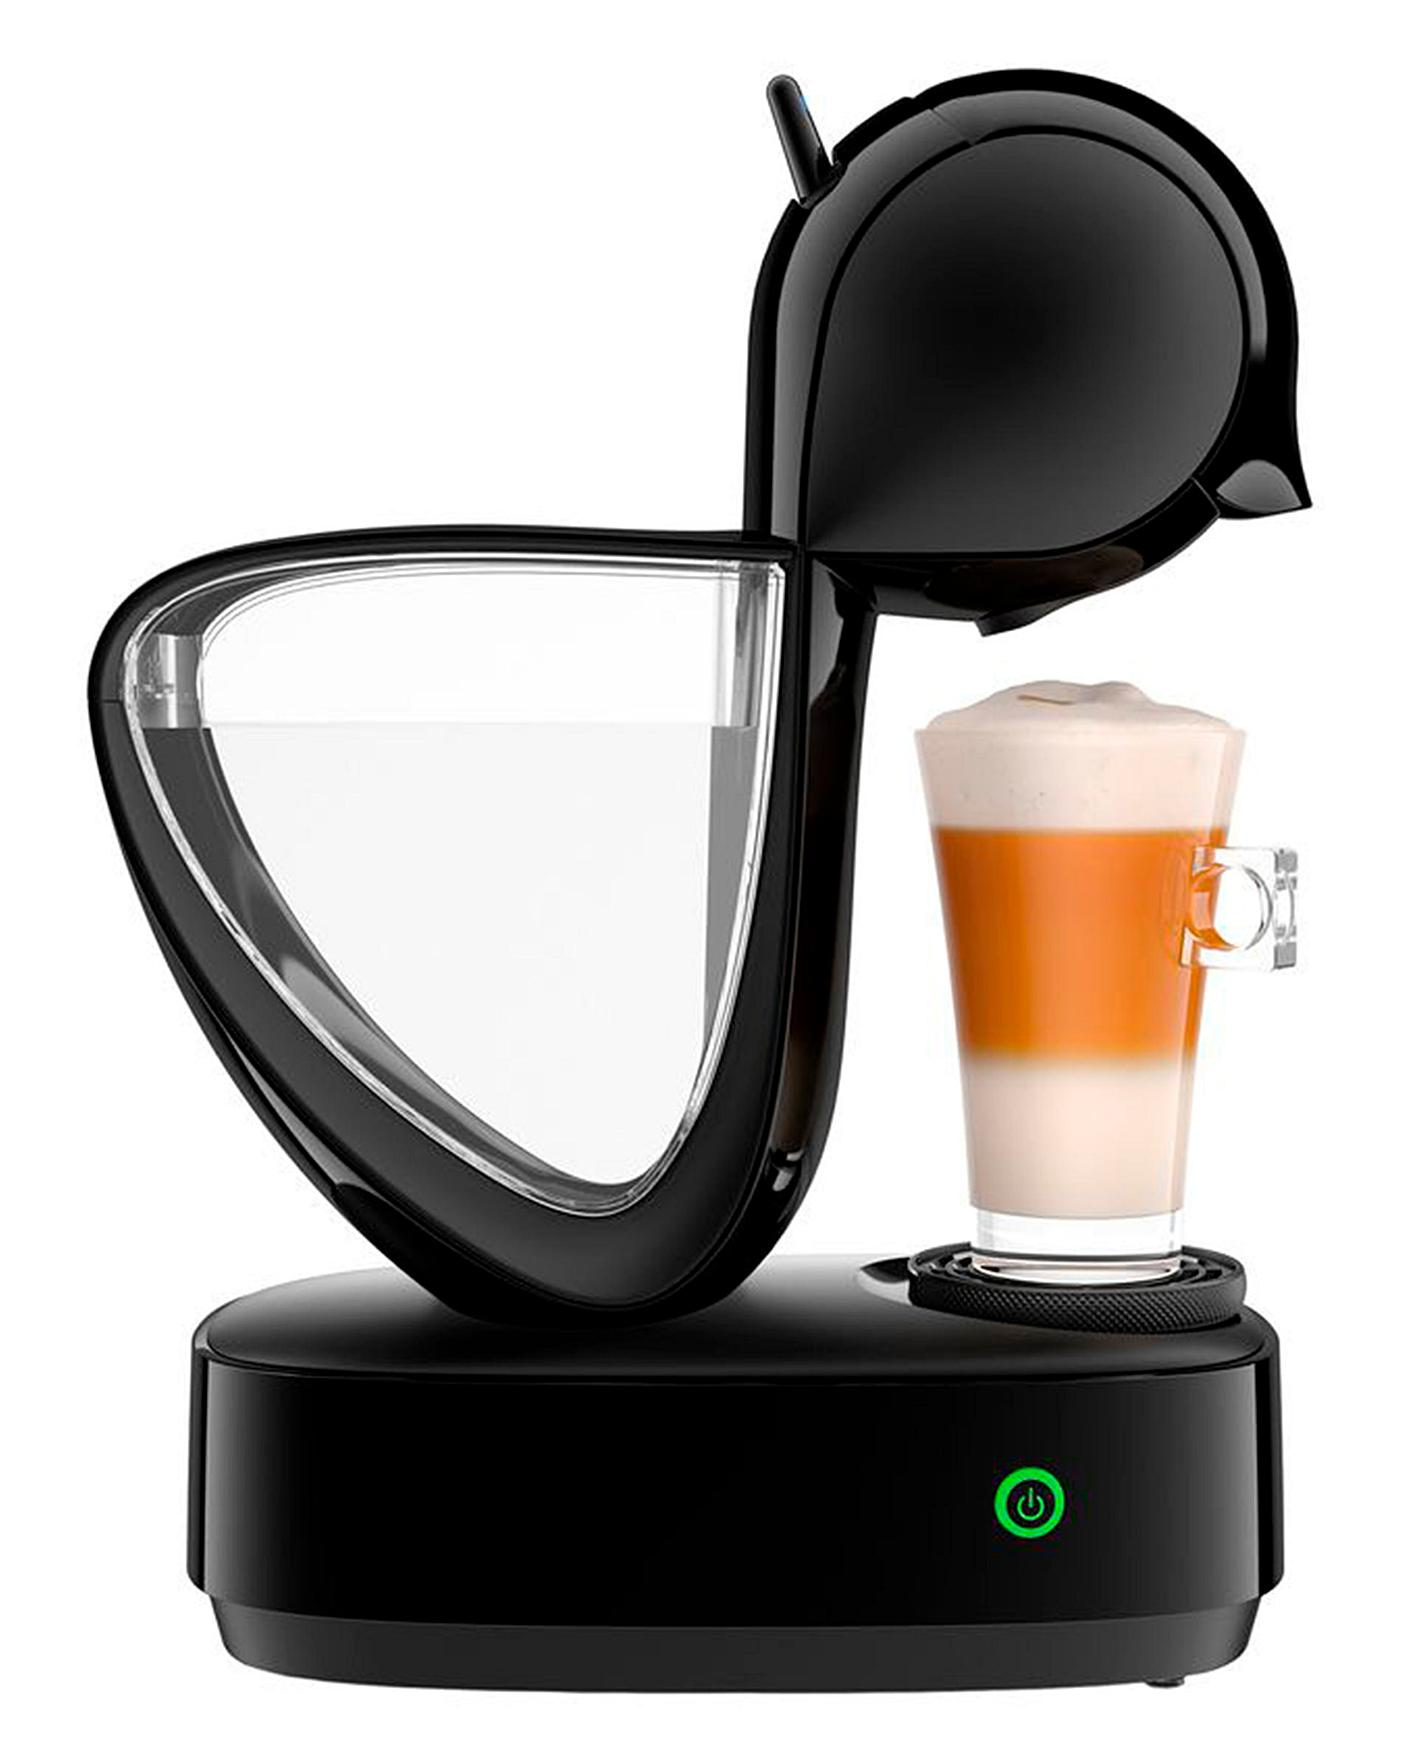 the latest 57a9a f0178 Nescafe Dolce Gusto Infinissima Machine